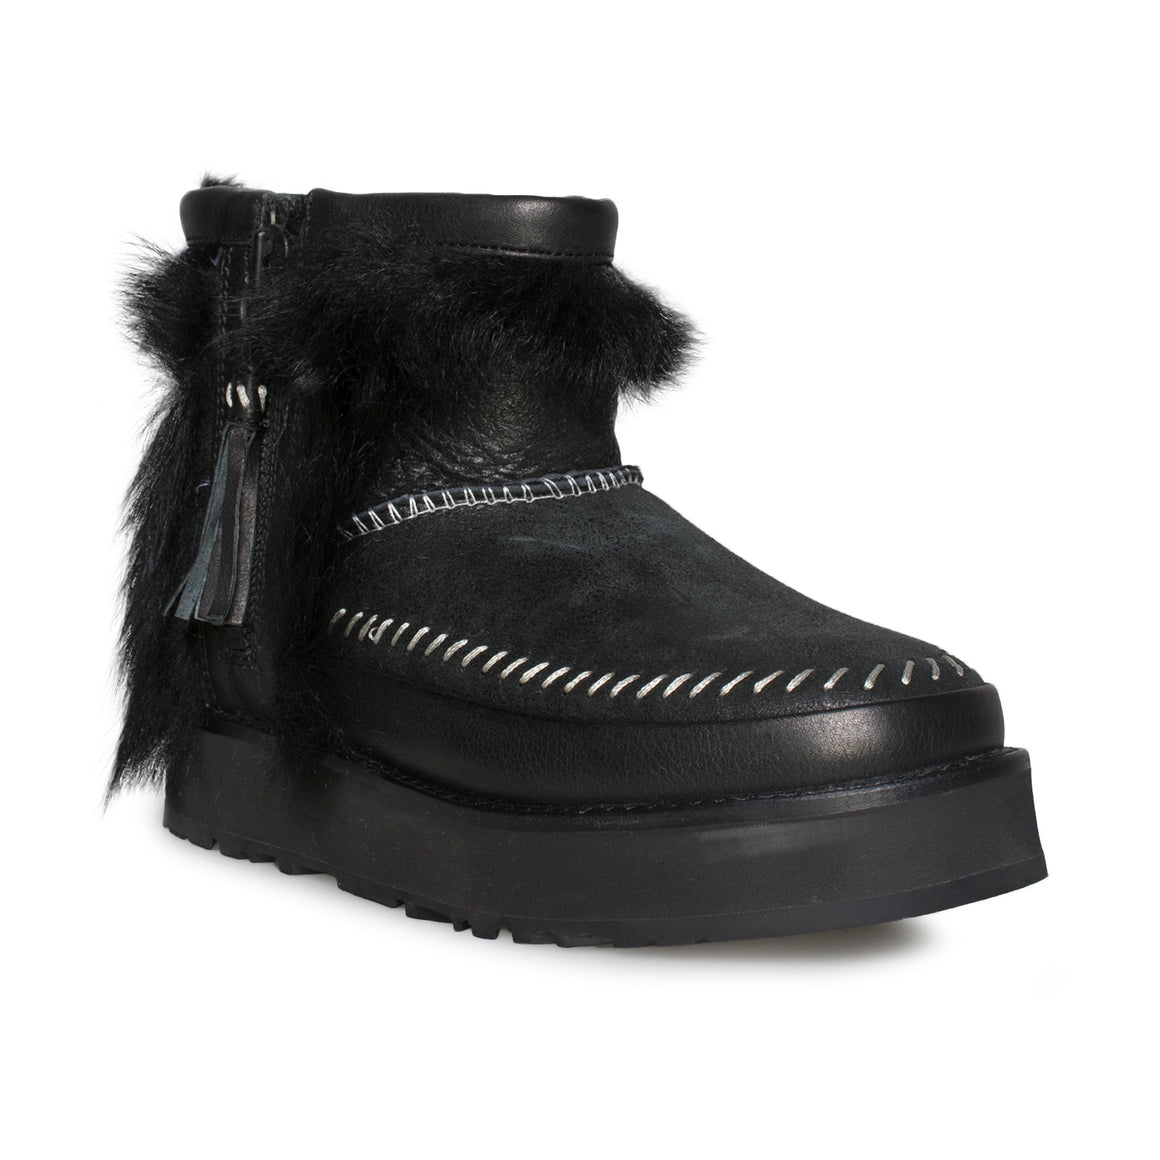 UGG Fluff Punk Boot Black - Women's